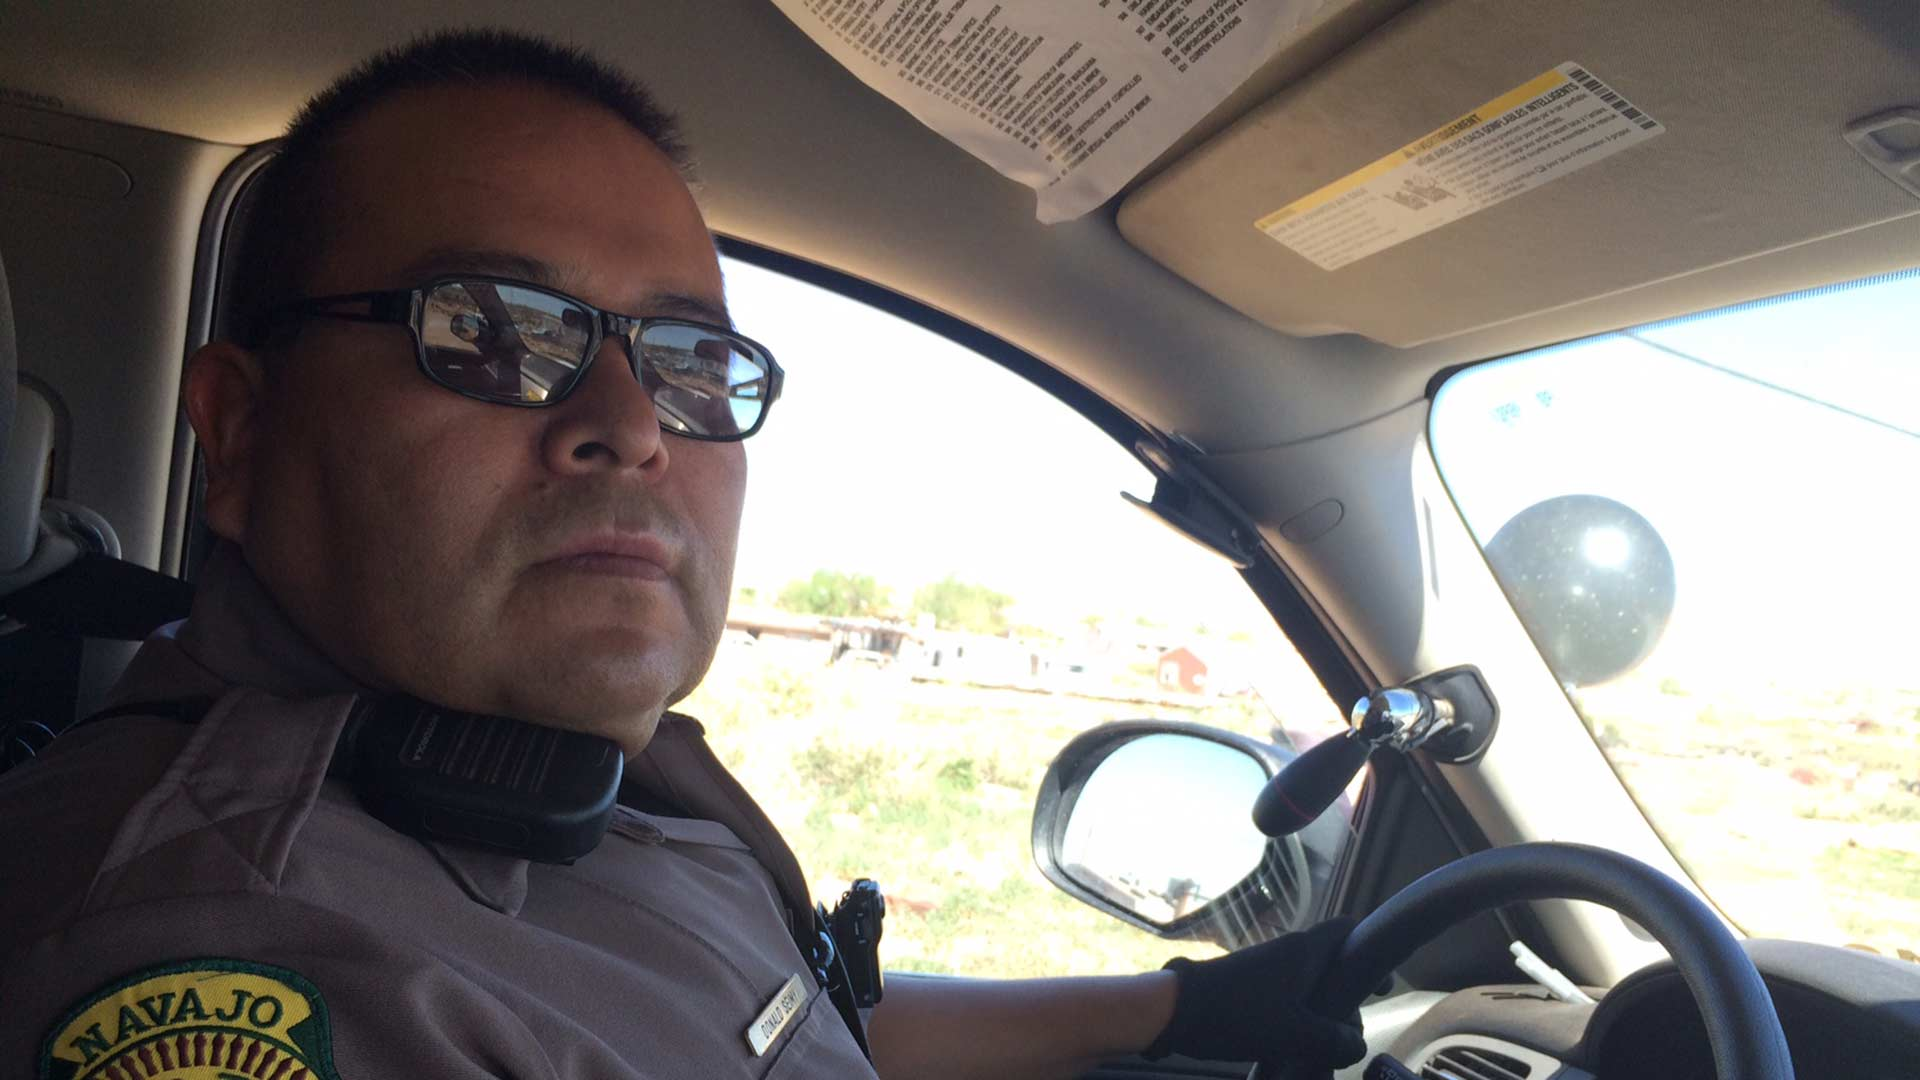 Navajo Nation Police Officer Donald Seimy says the tribe needs more officers.